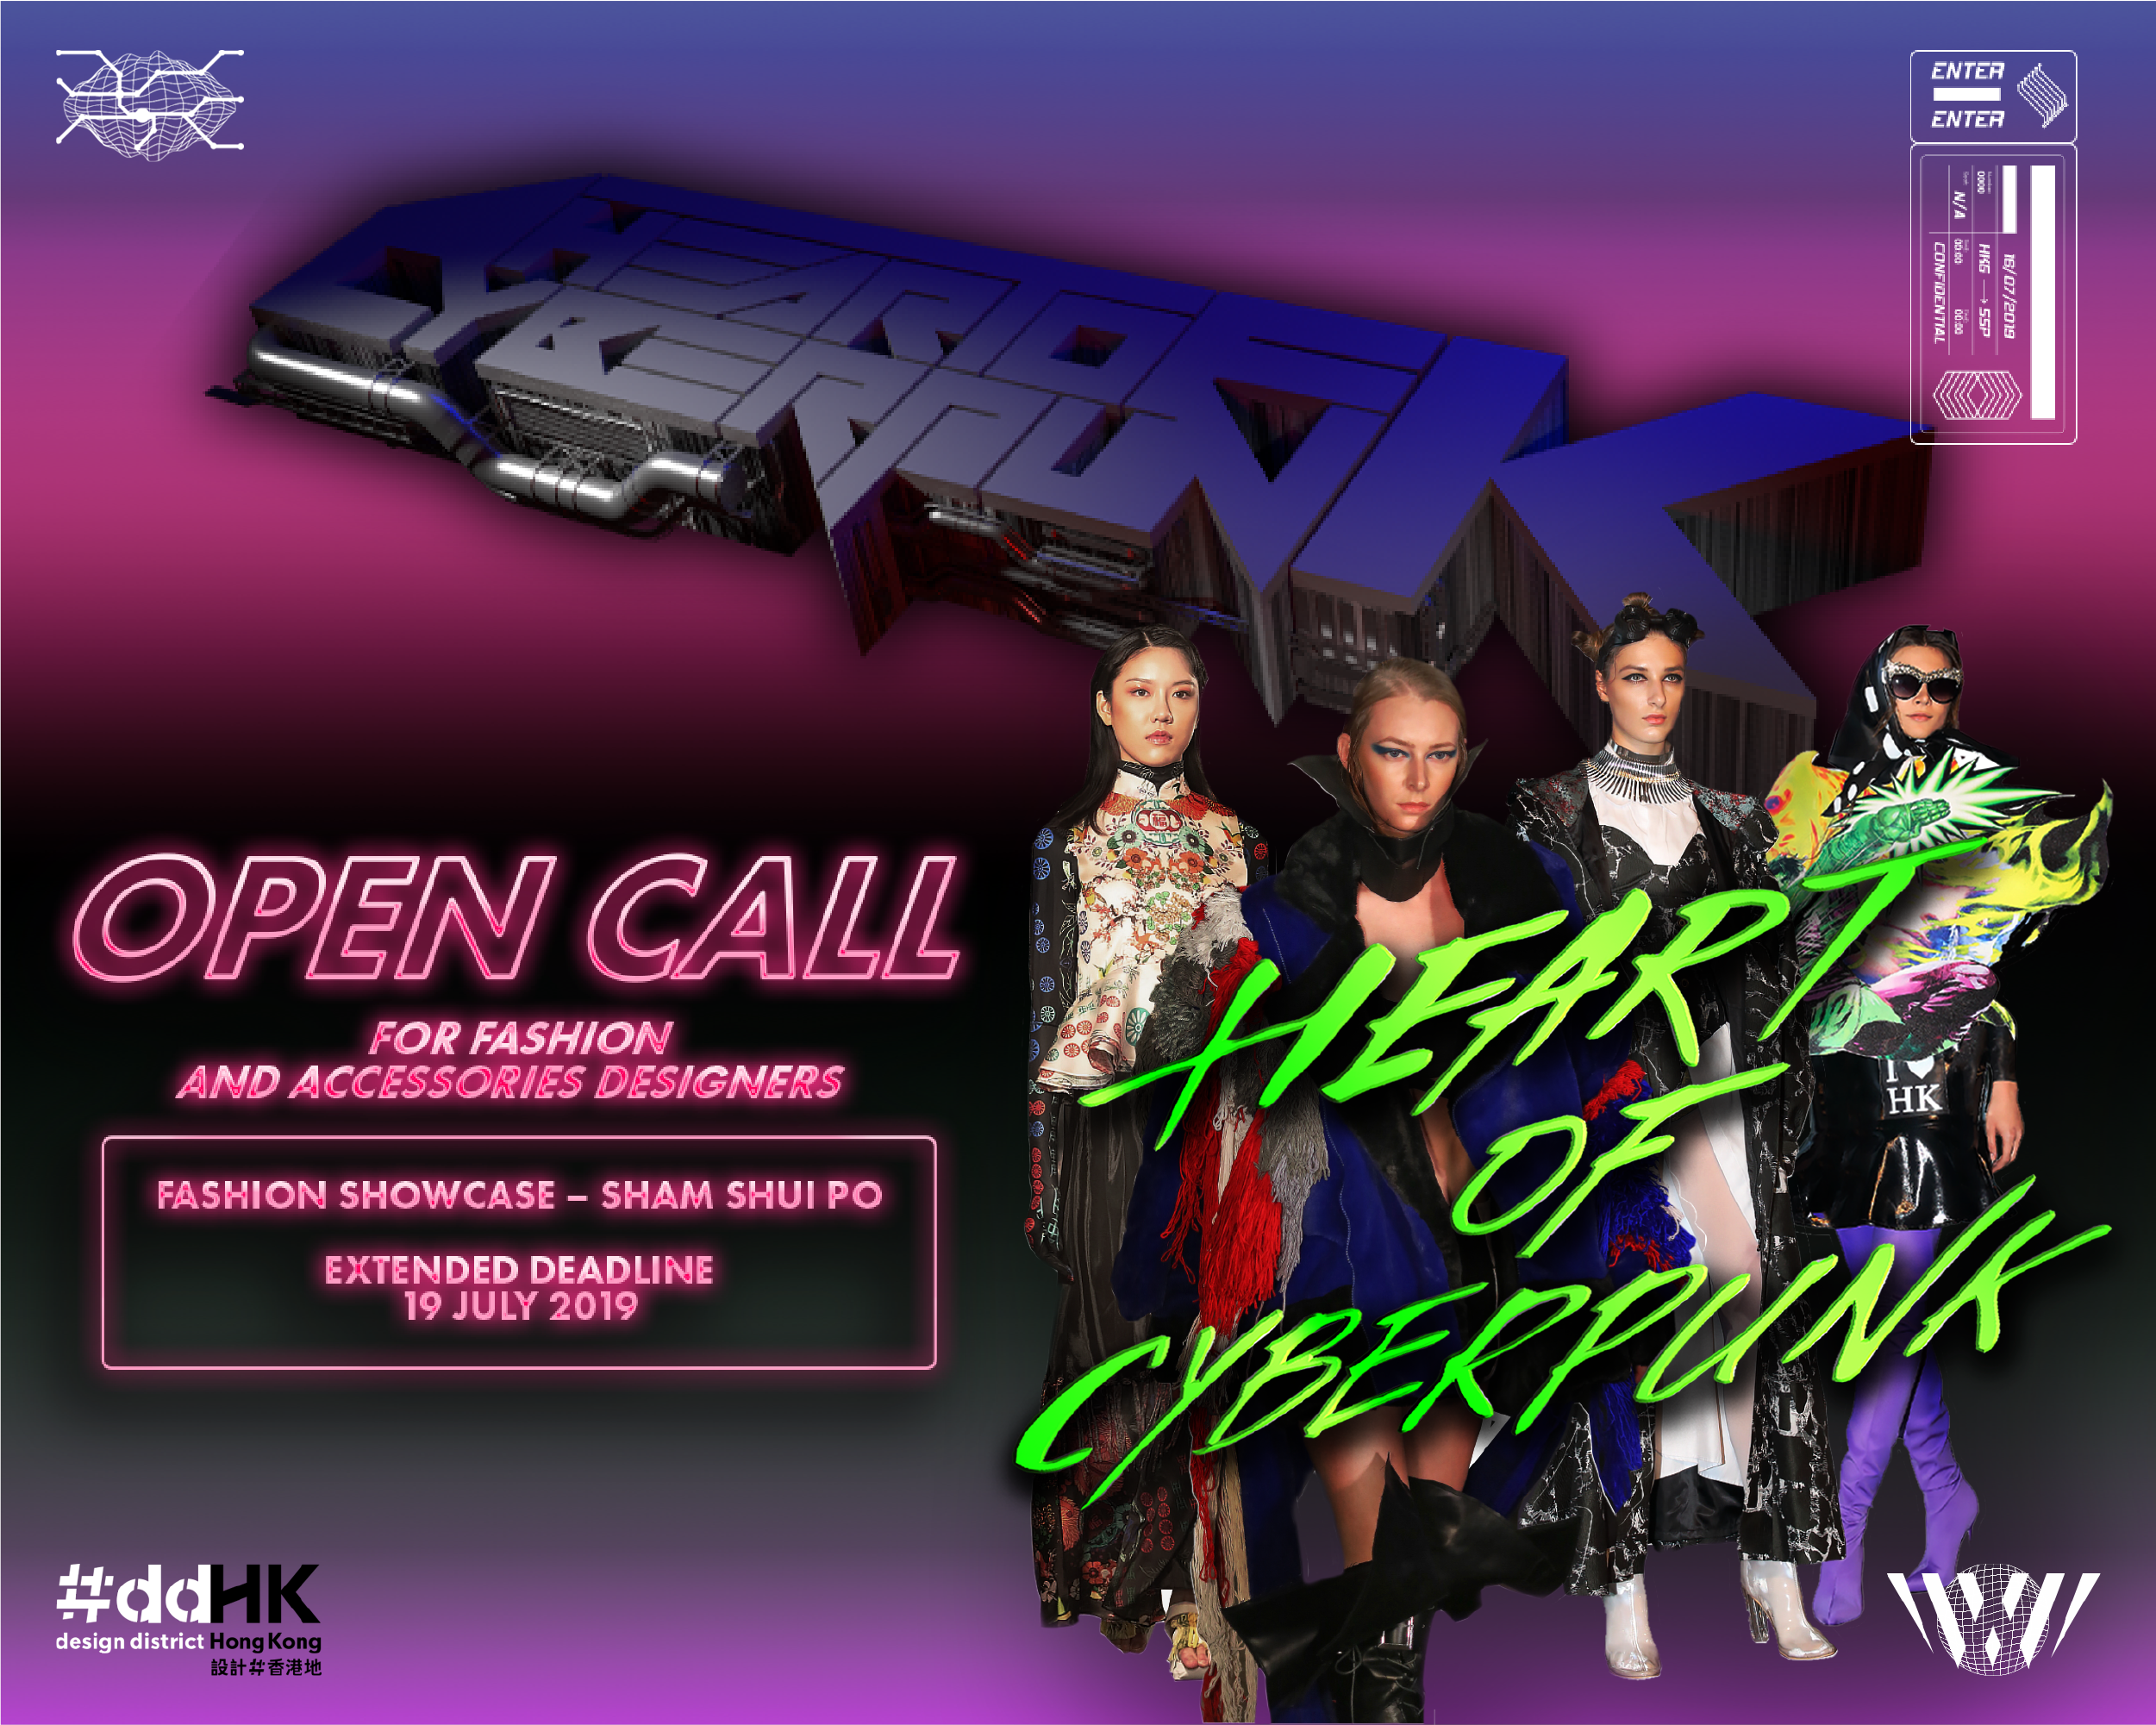 #ddHK Open Call for Designers